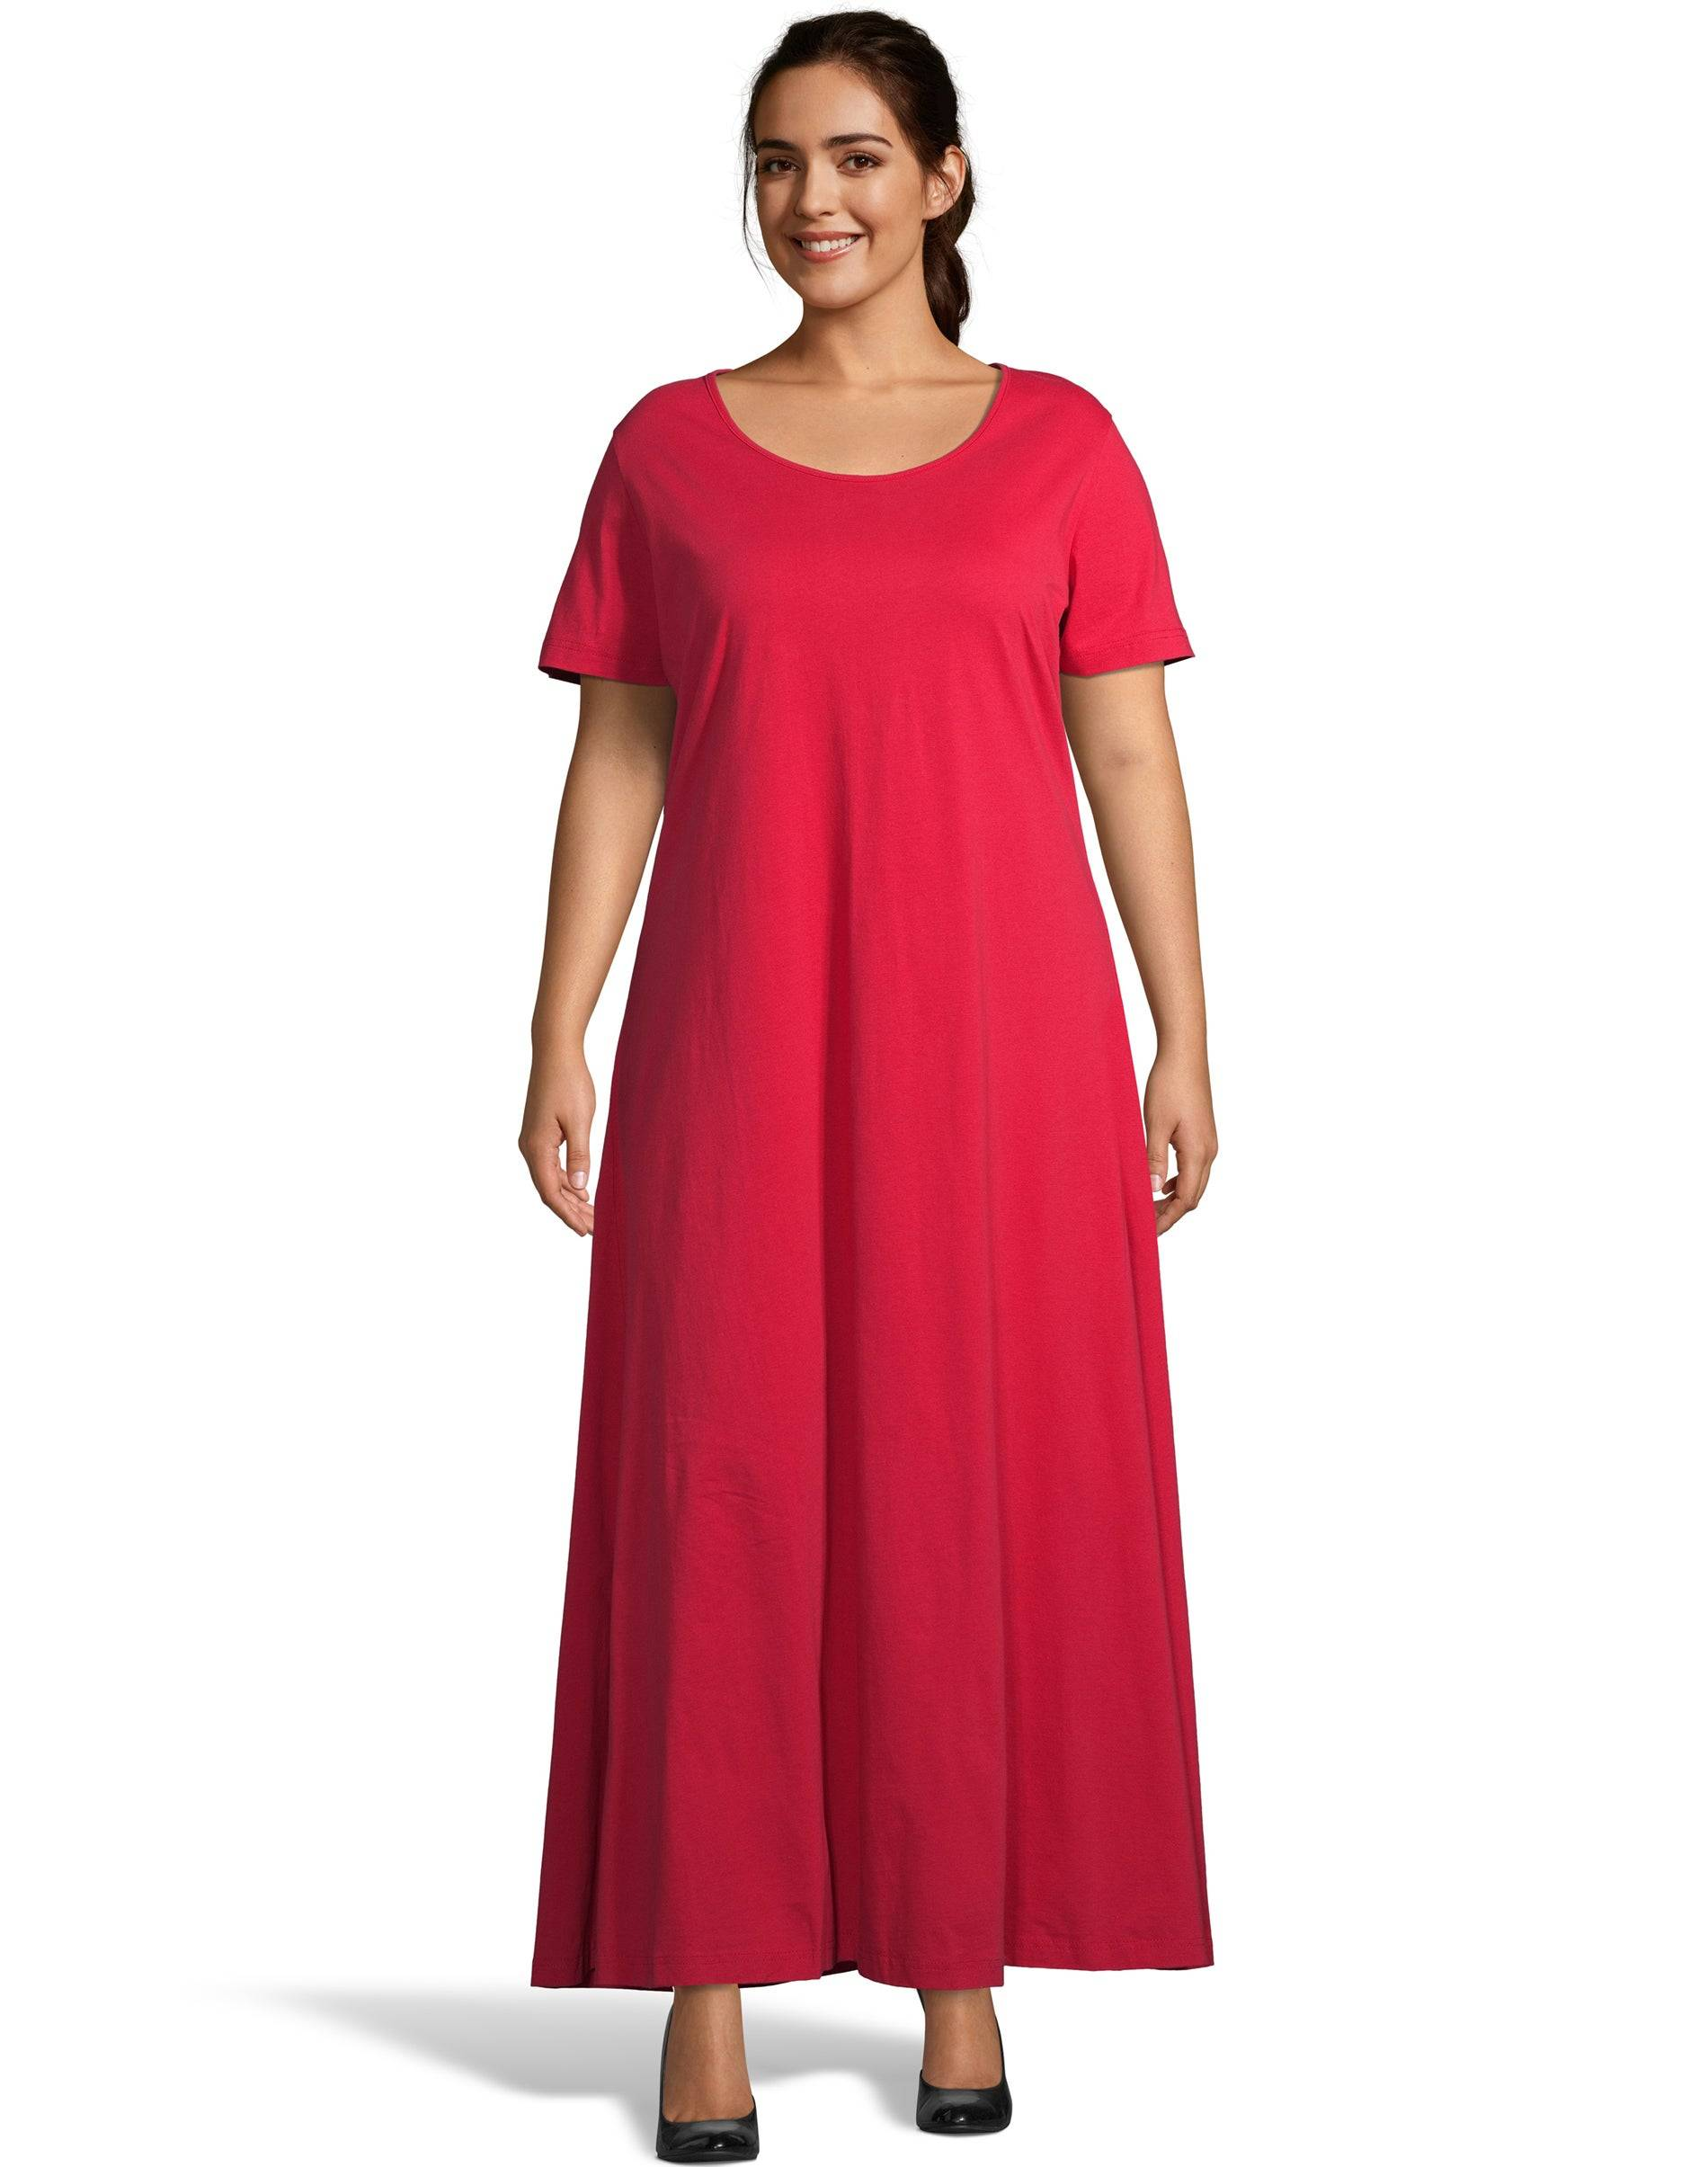 Just My Size Jersey Matchables Maxi Dress Fire Roasted Red 5X Women's